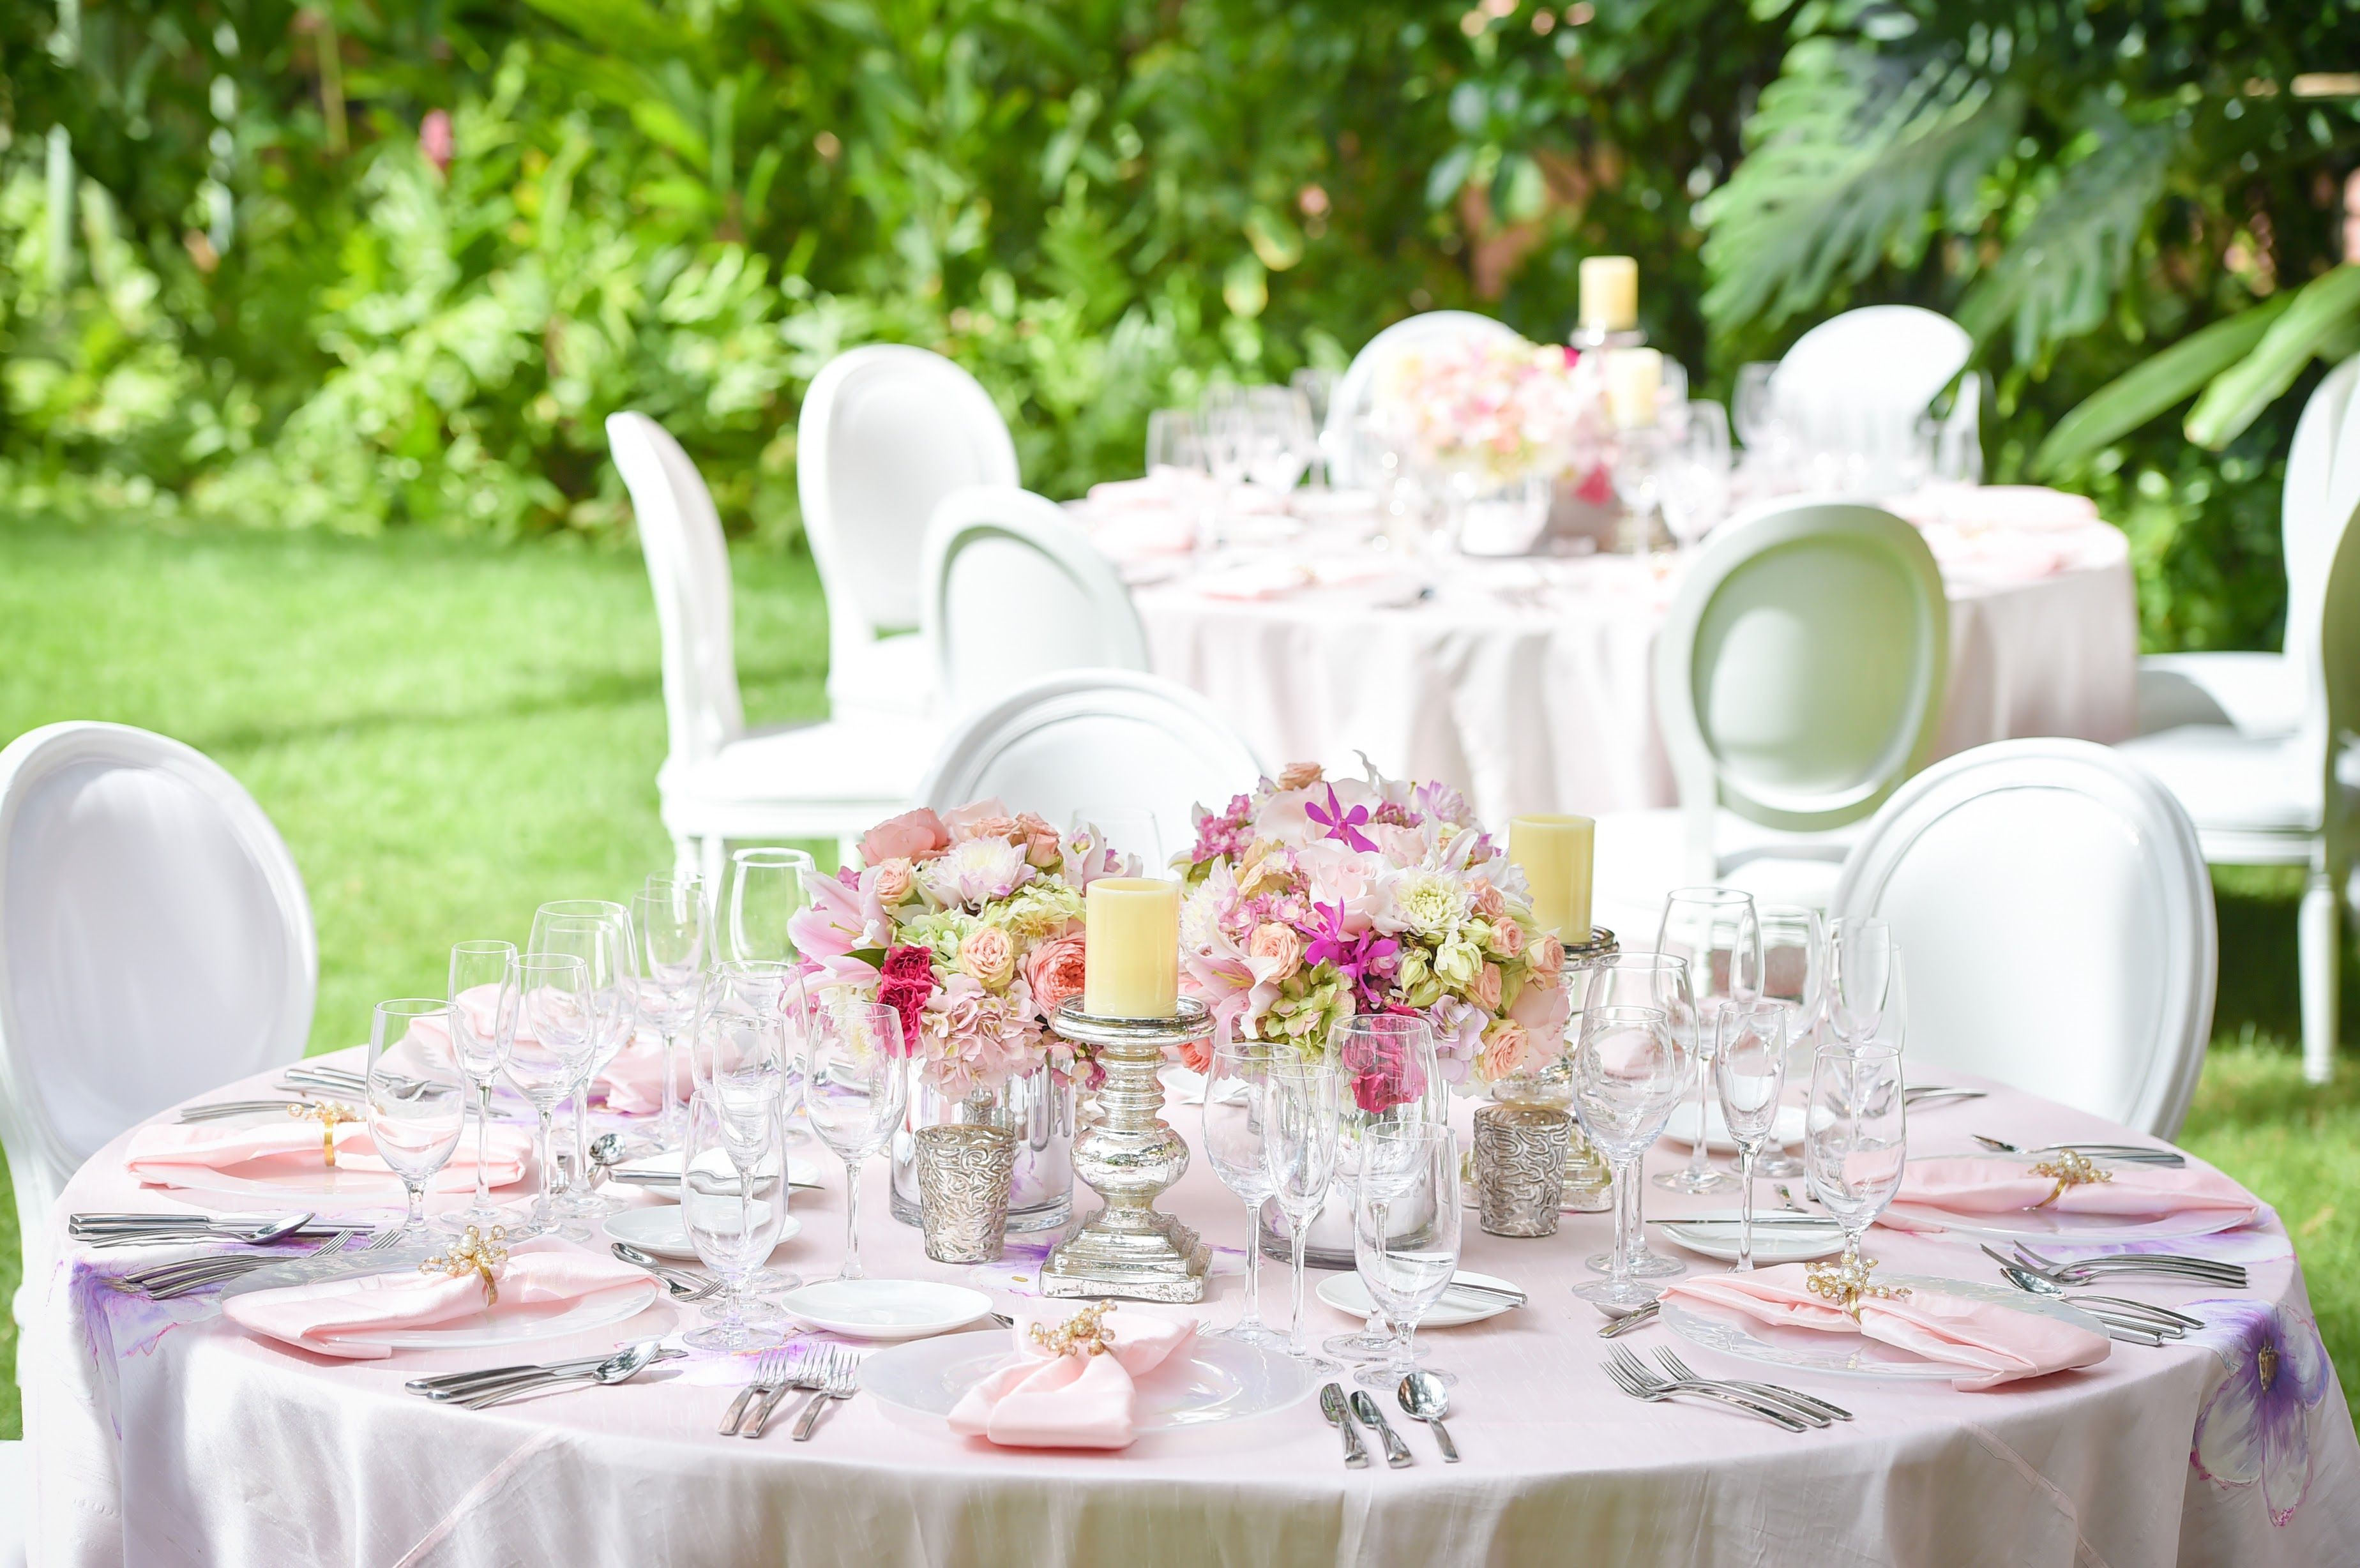 Pretty in Pink Wedding theme at The Royal Hawaiian, a Luxury ...